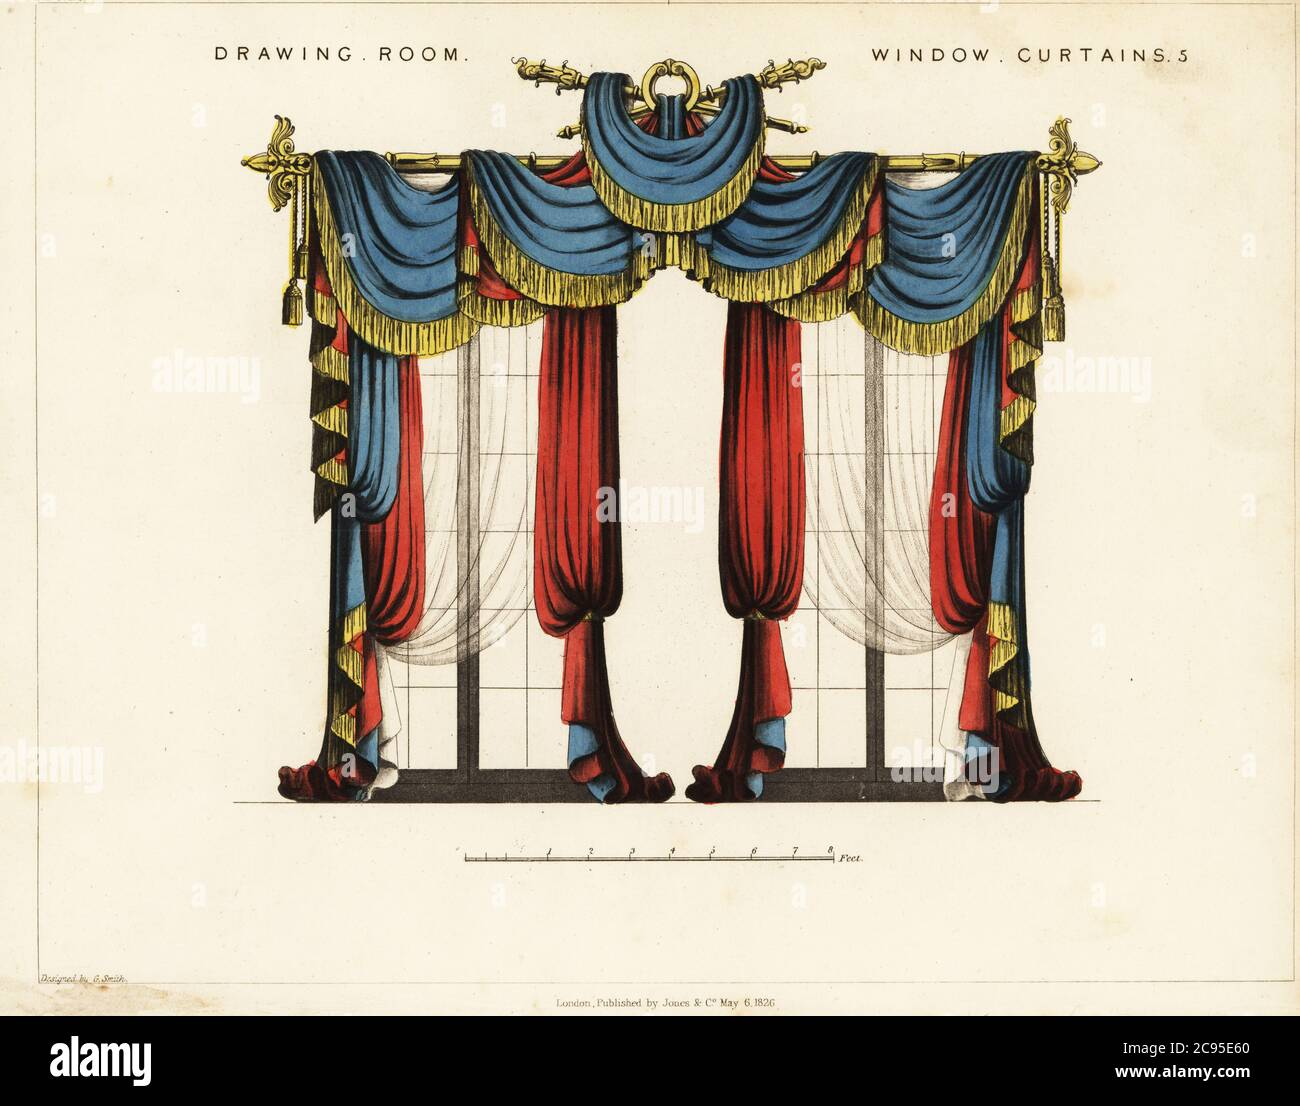 Drawing Room Window Curtains Regency Style Blue And Gold Fringed Drapes Hung Over Gilt Curtain Rods Scarlet Heavy Curtains And Transparent Curtains At The Windows Handcoloured Copperplate Engraving From George Smith S The Cabinet Maker